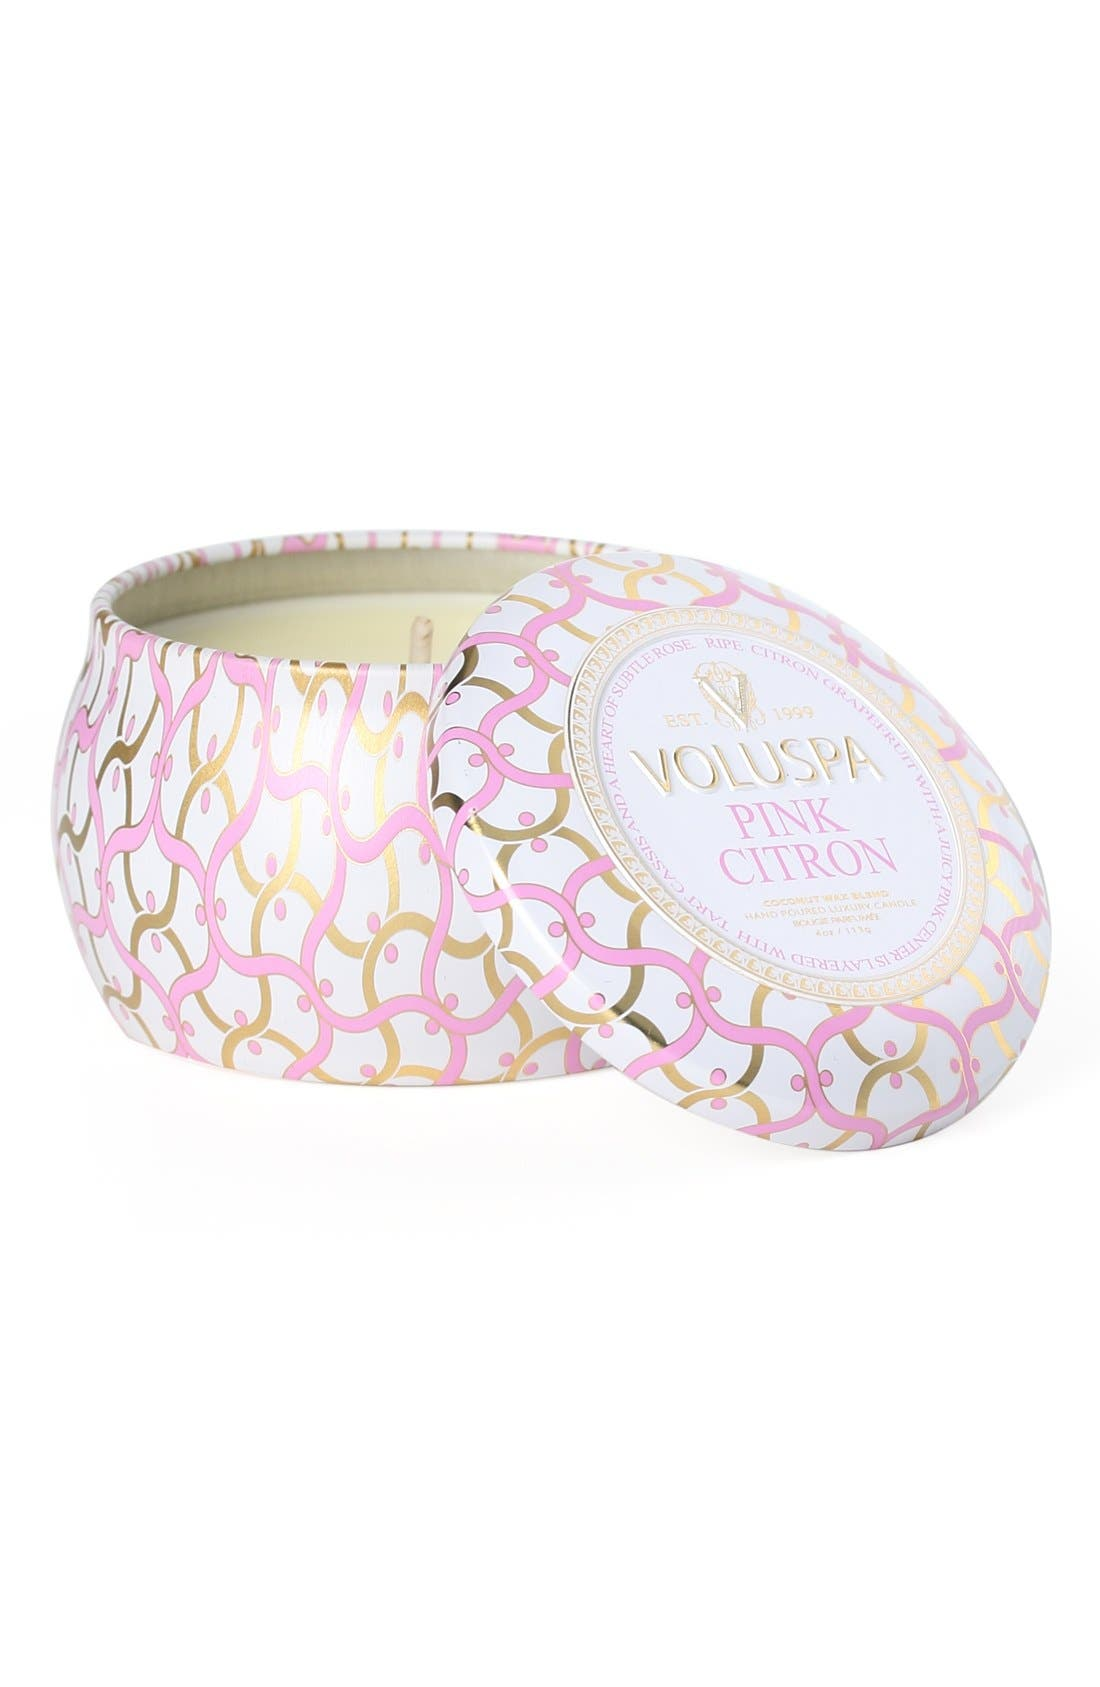 Maison Blanc Pink Citron Petite Decorative Tin Candle,                             Main thumbnail 1, color,                             No Color